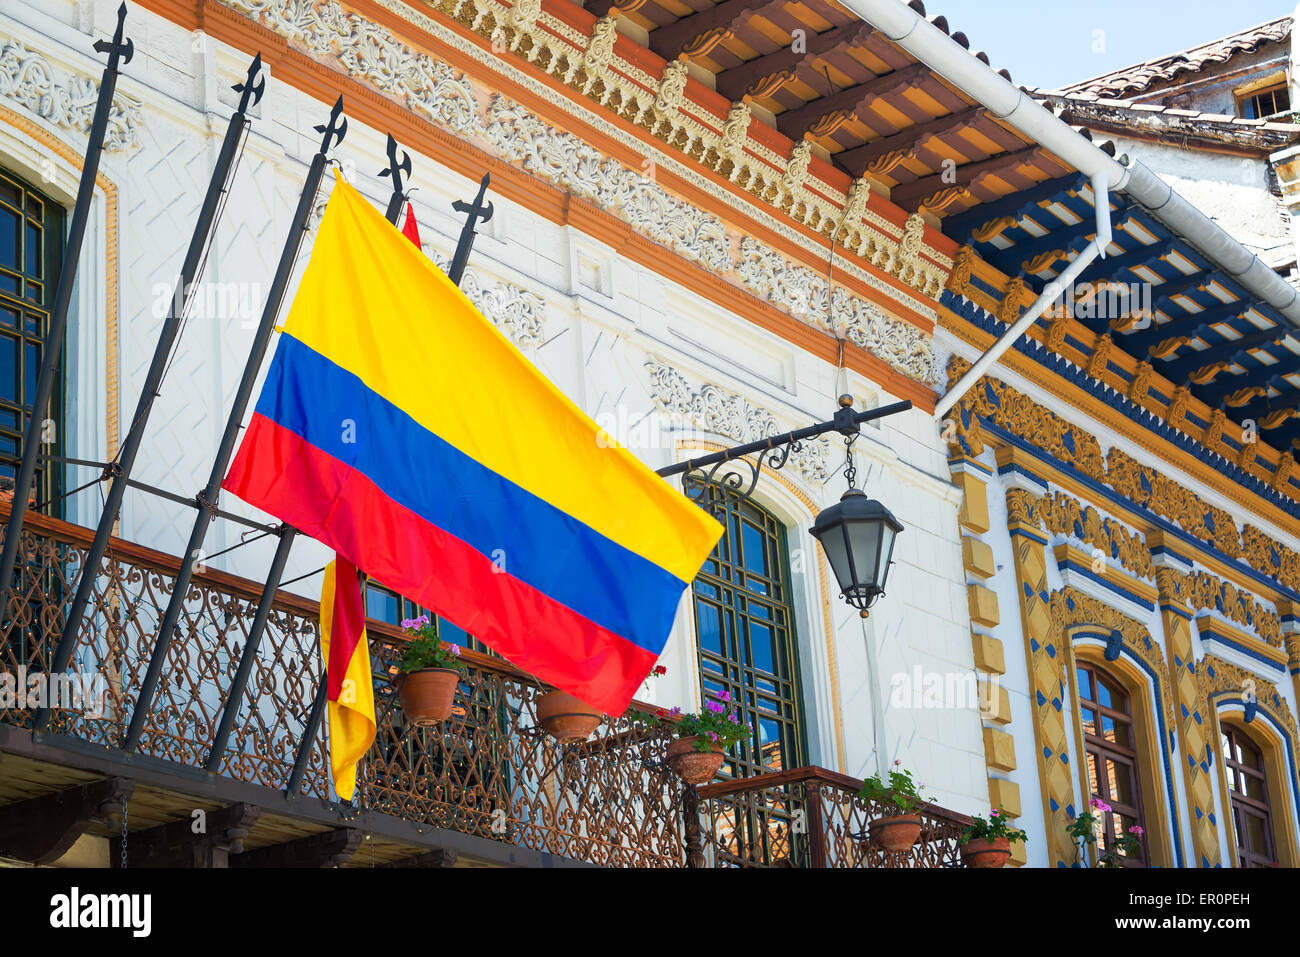 Historic buildings in Cuenca, Ecuador with a Ecuadorian flag in the foreground - Stock Image